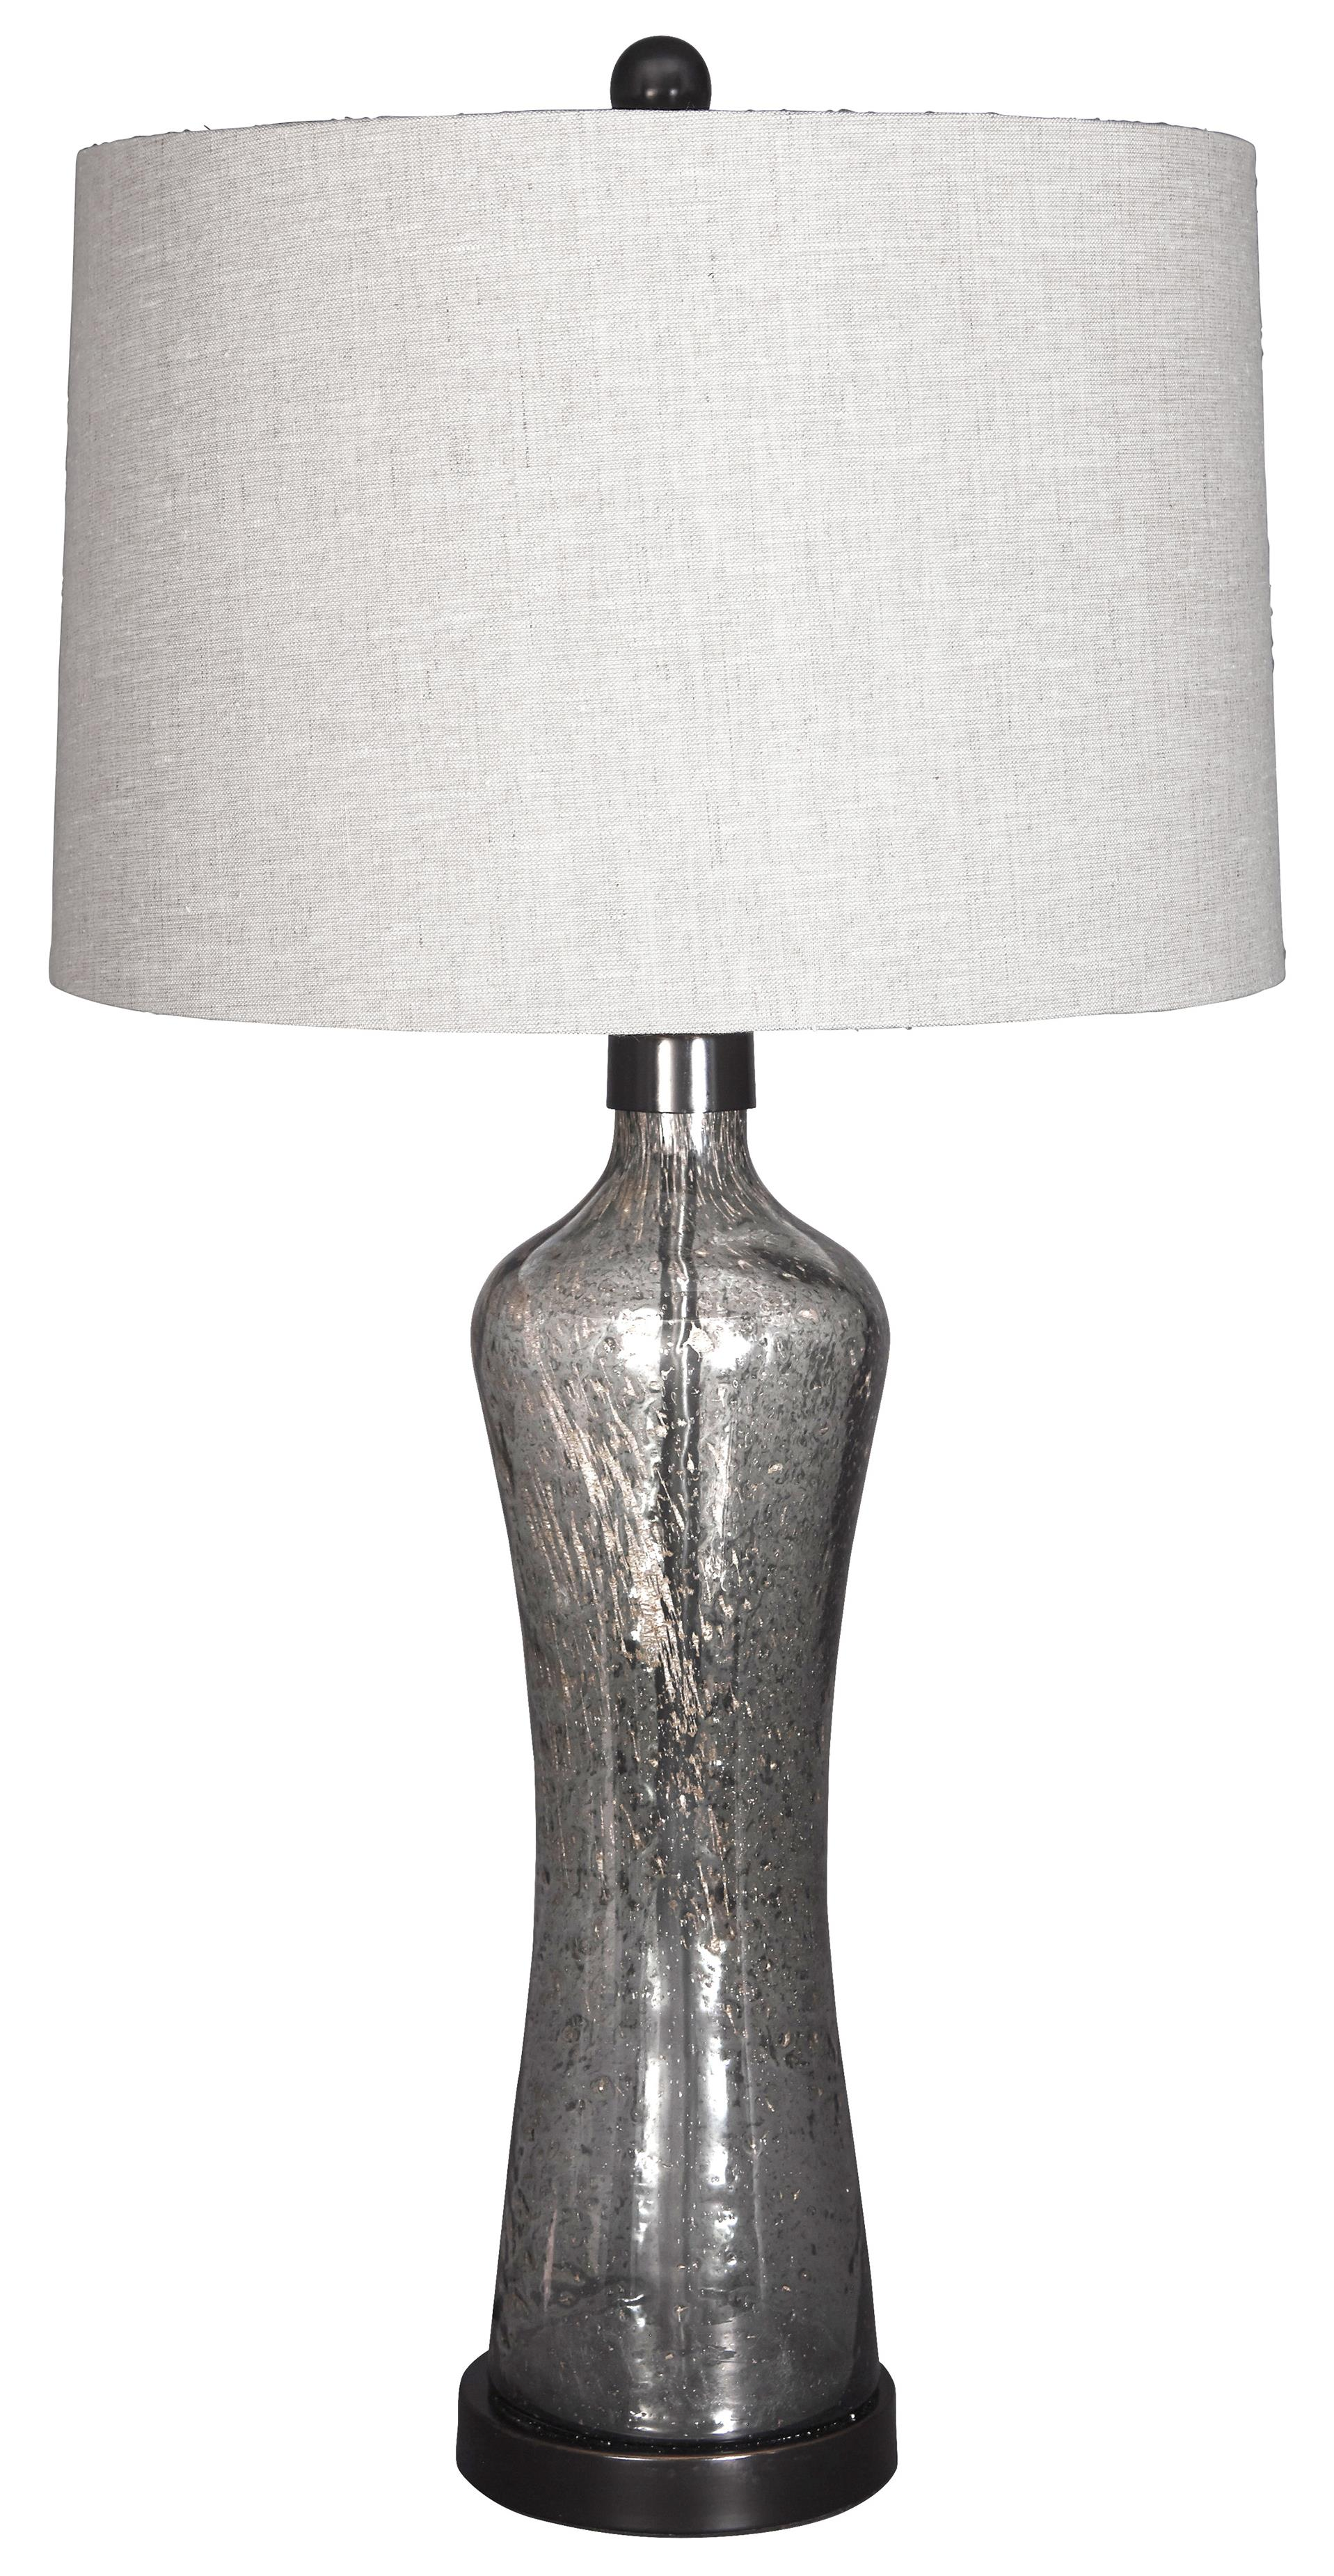 Signature Design by Ashley Lamps - Vintage Style Sharrona Glass Table Lamp - Item Number: L430214